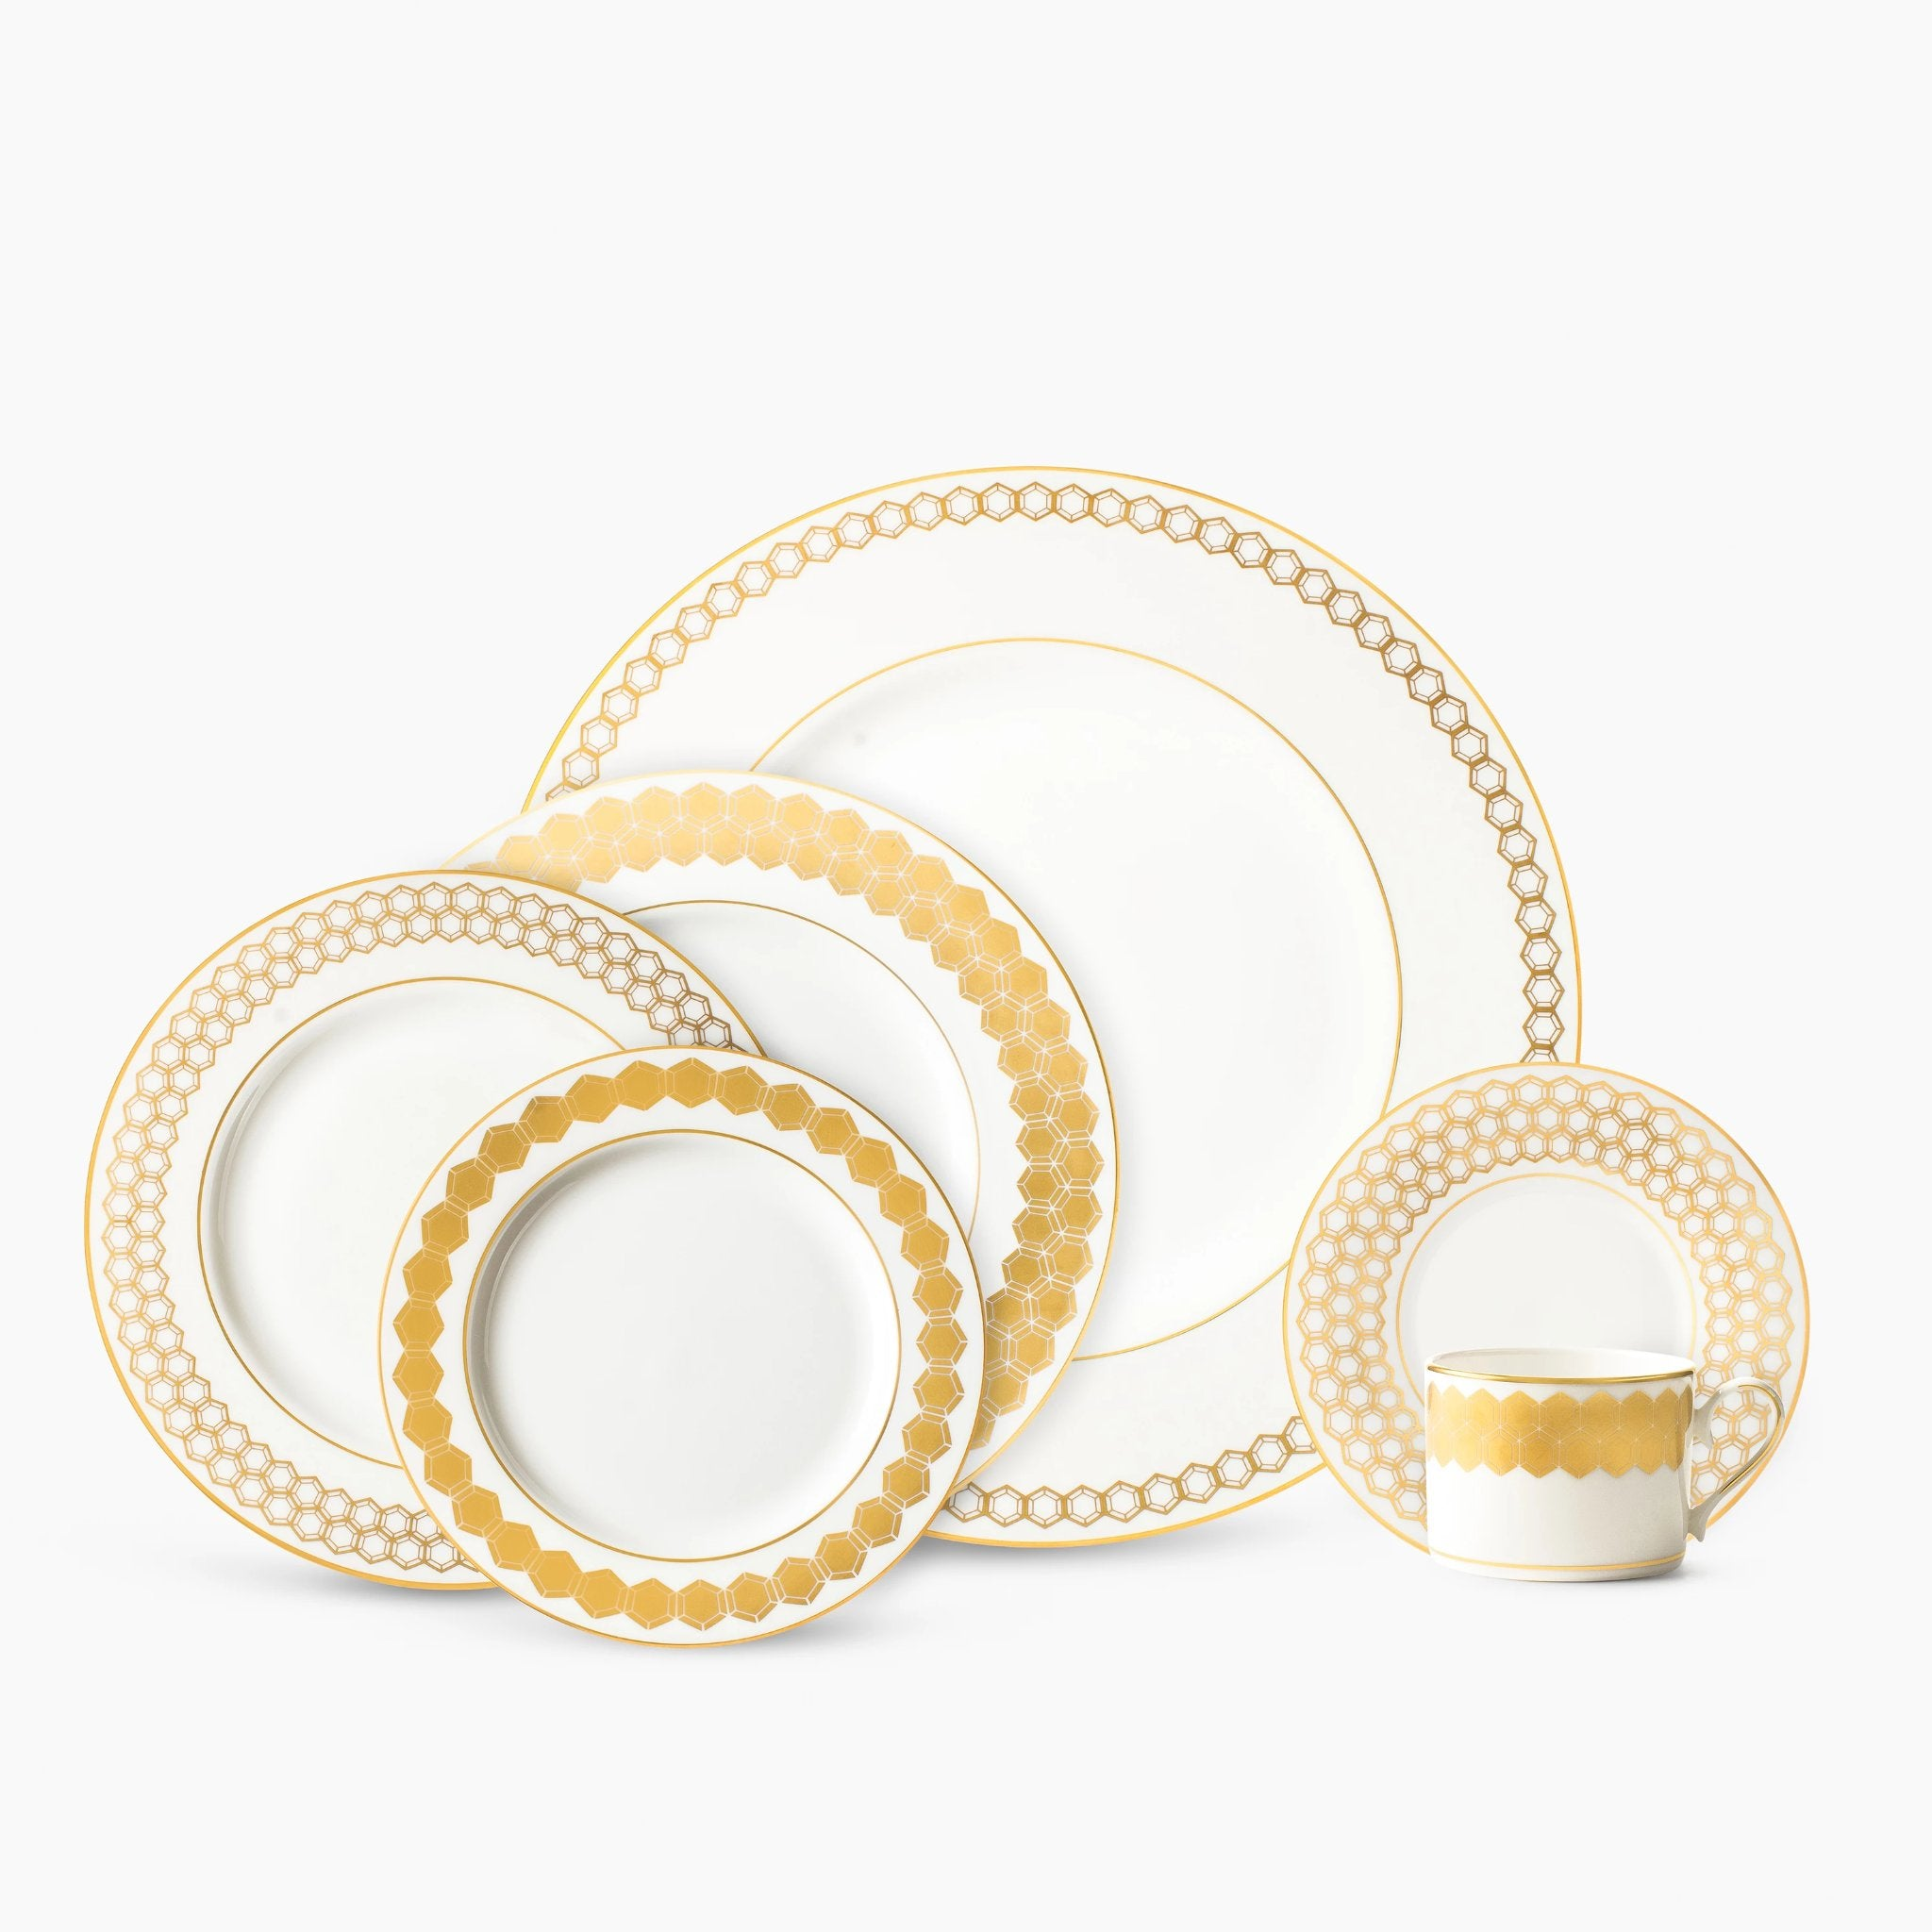 Lenox Prismatic Gold 5pc Place Setting